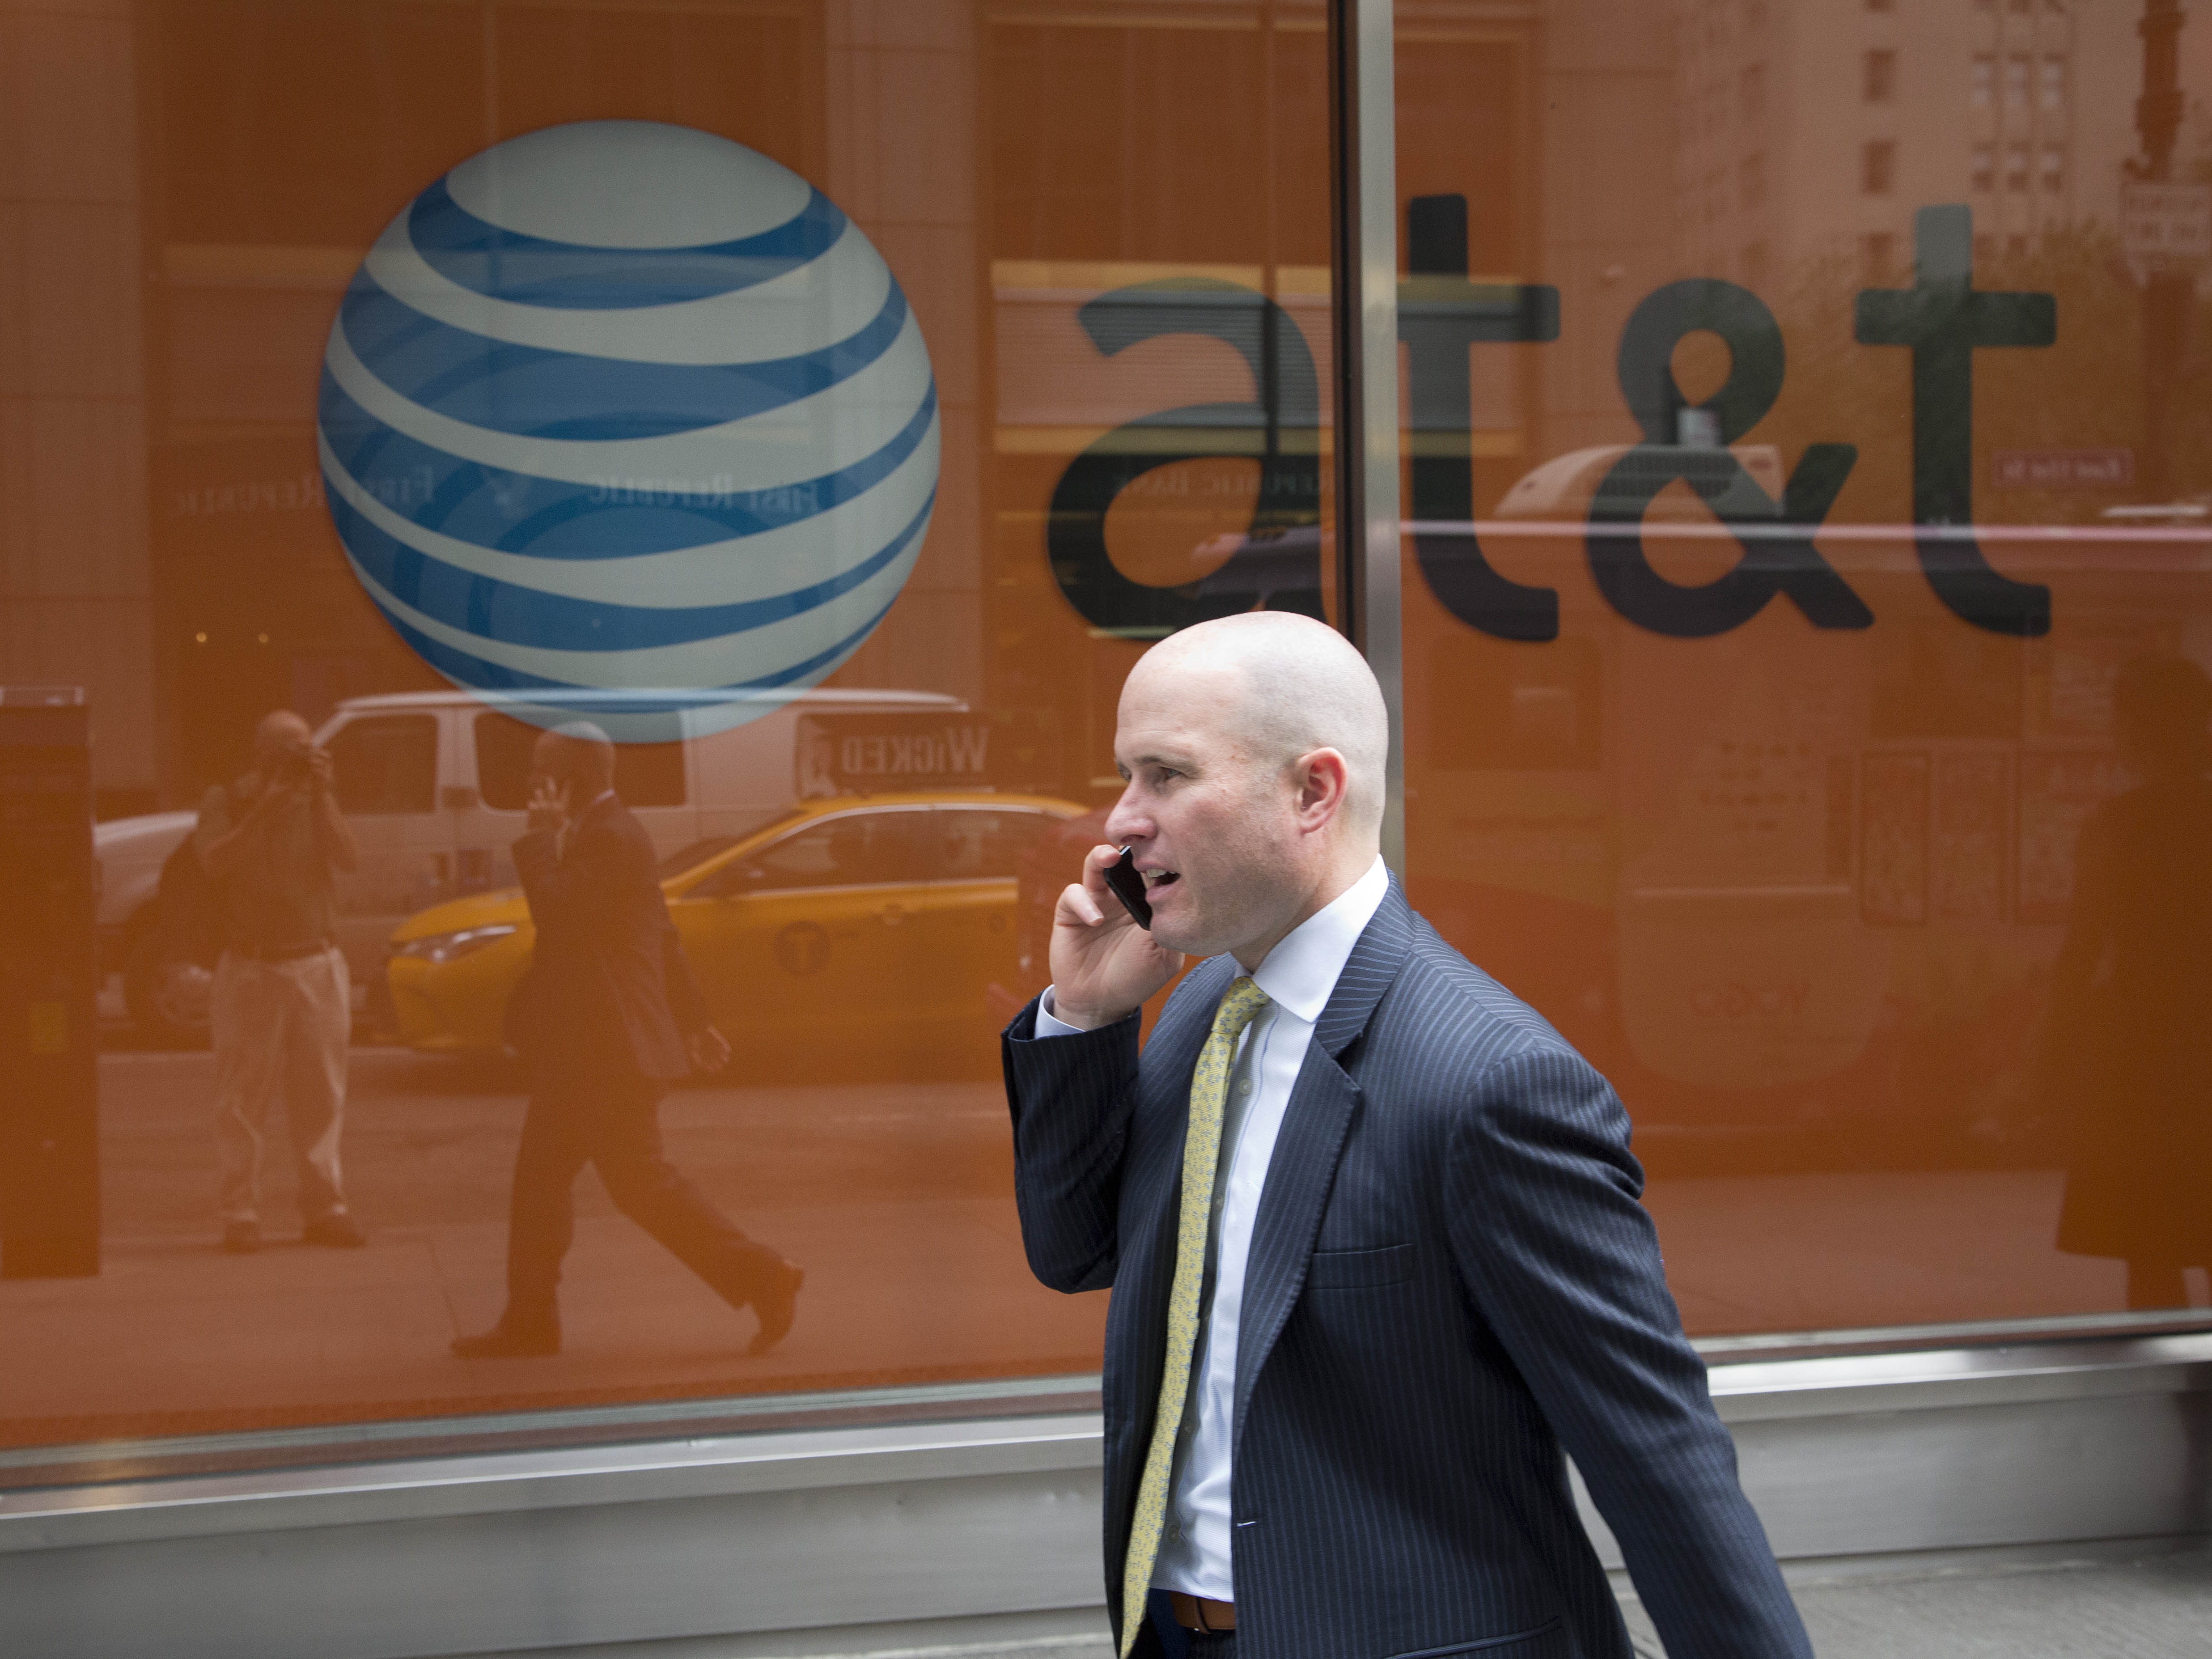 Report: AT&T Had Long, 'Highly Collaborative' Partnership With NSA